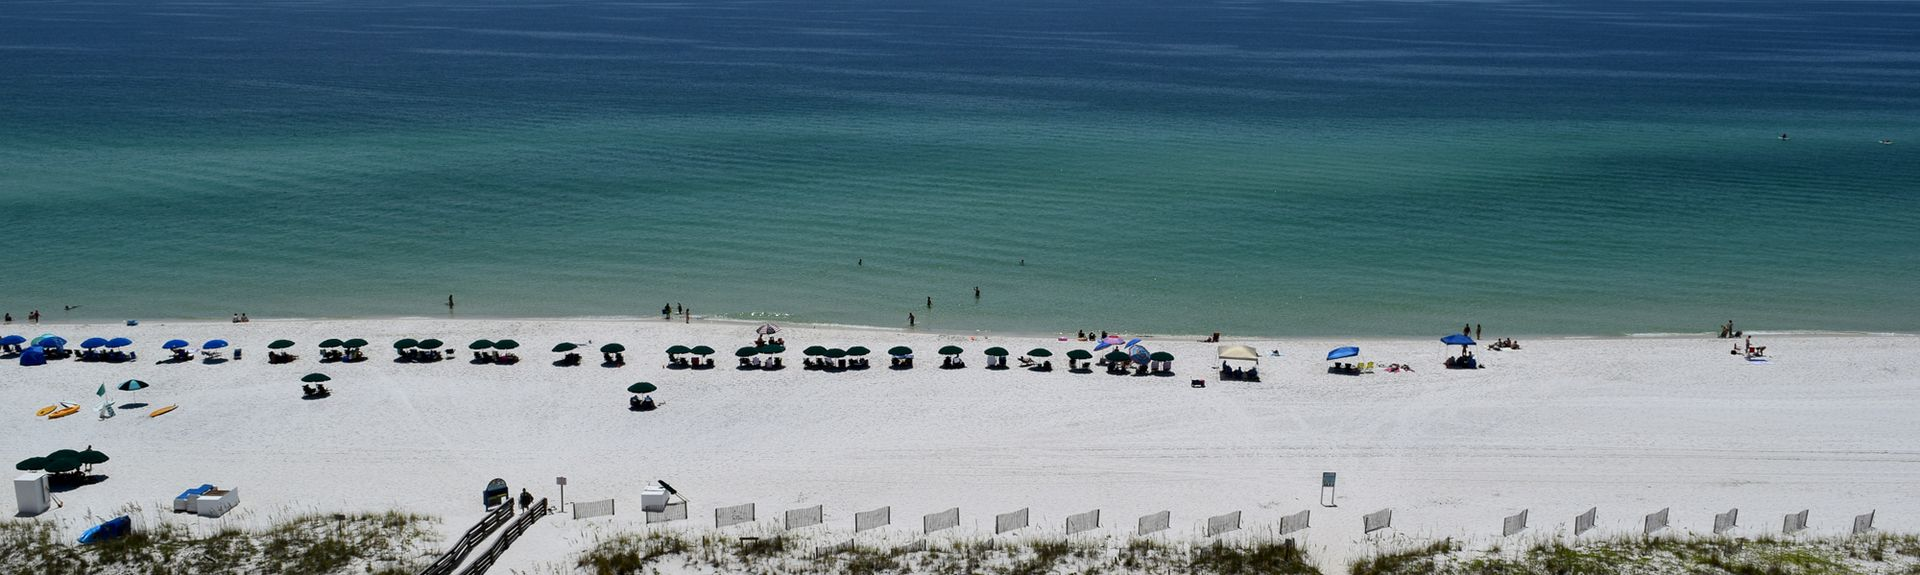 Emerald Isle Resort Condominiums, Pensacola Beach, FL, USA